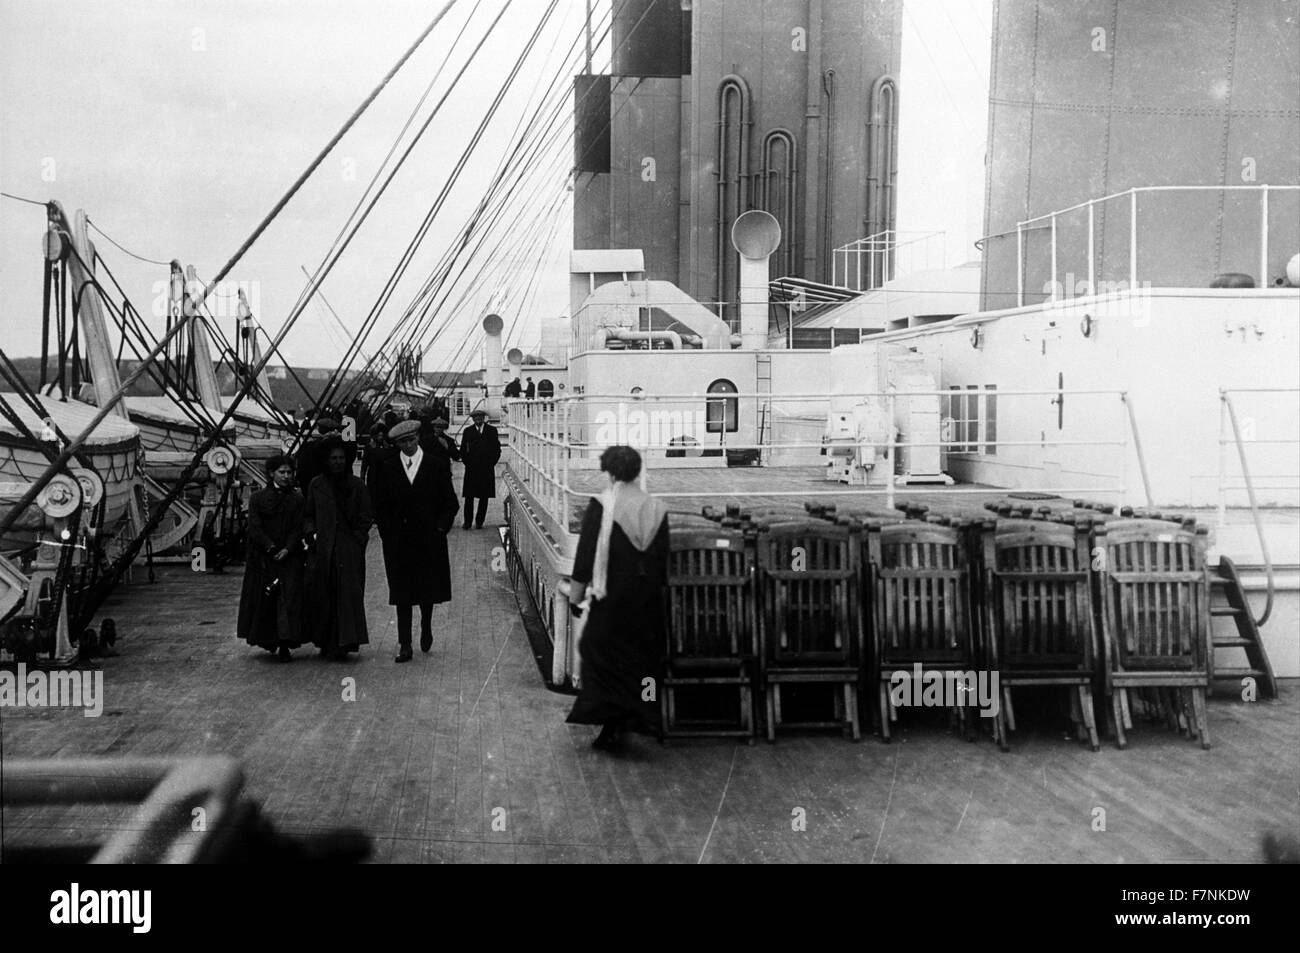 Passengers walk on the deck of the SS Titanic 1912 - Stock Image